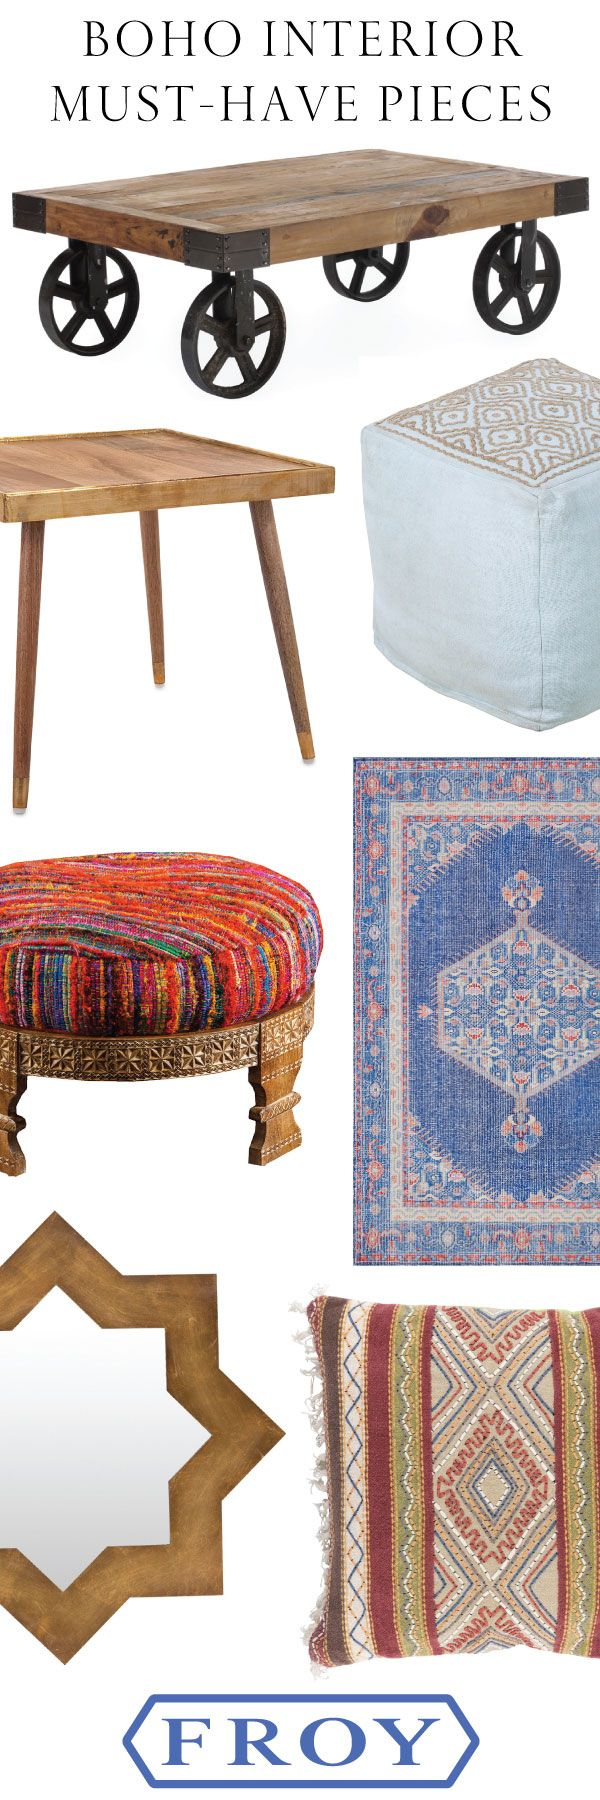 The Best Bohemian Interior Design Combines Rich Patterns Vibrant Colors And Organic Materials